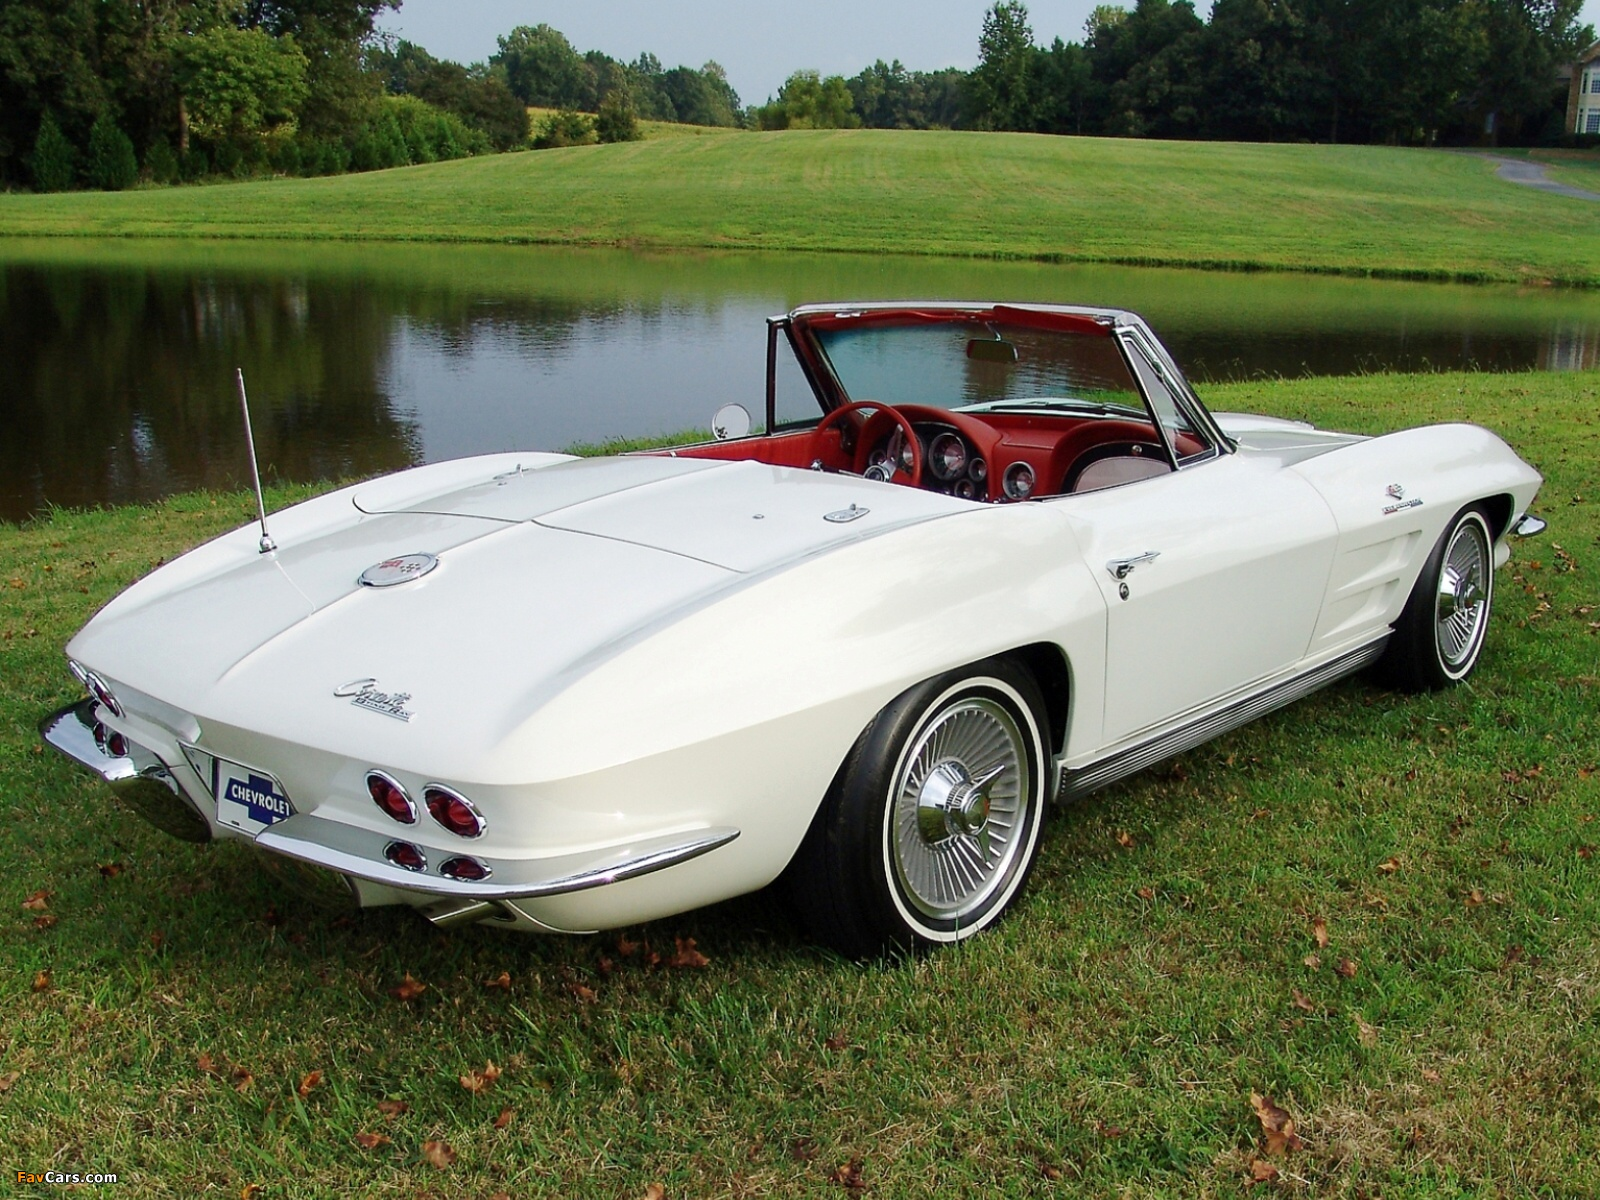 Corvette Sting Ray Convertible C2 1963 wallpapers 1600 x 1200 1600x1200